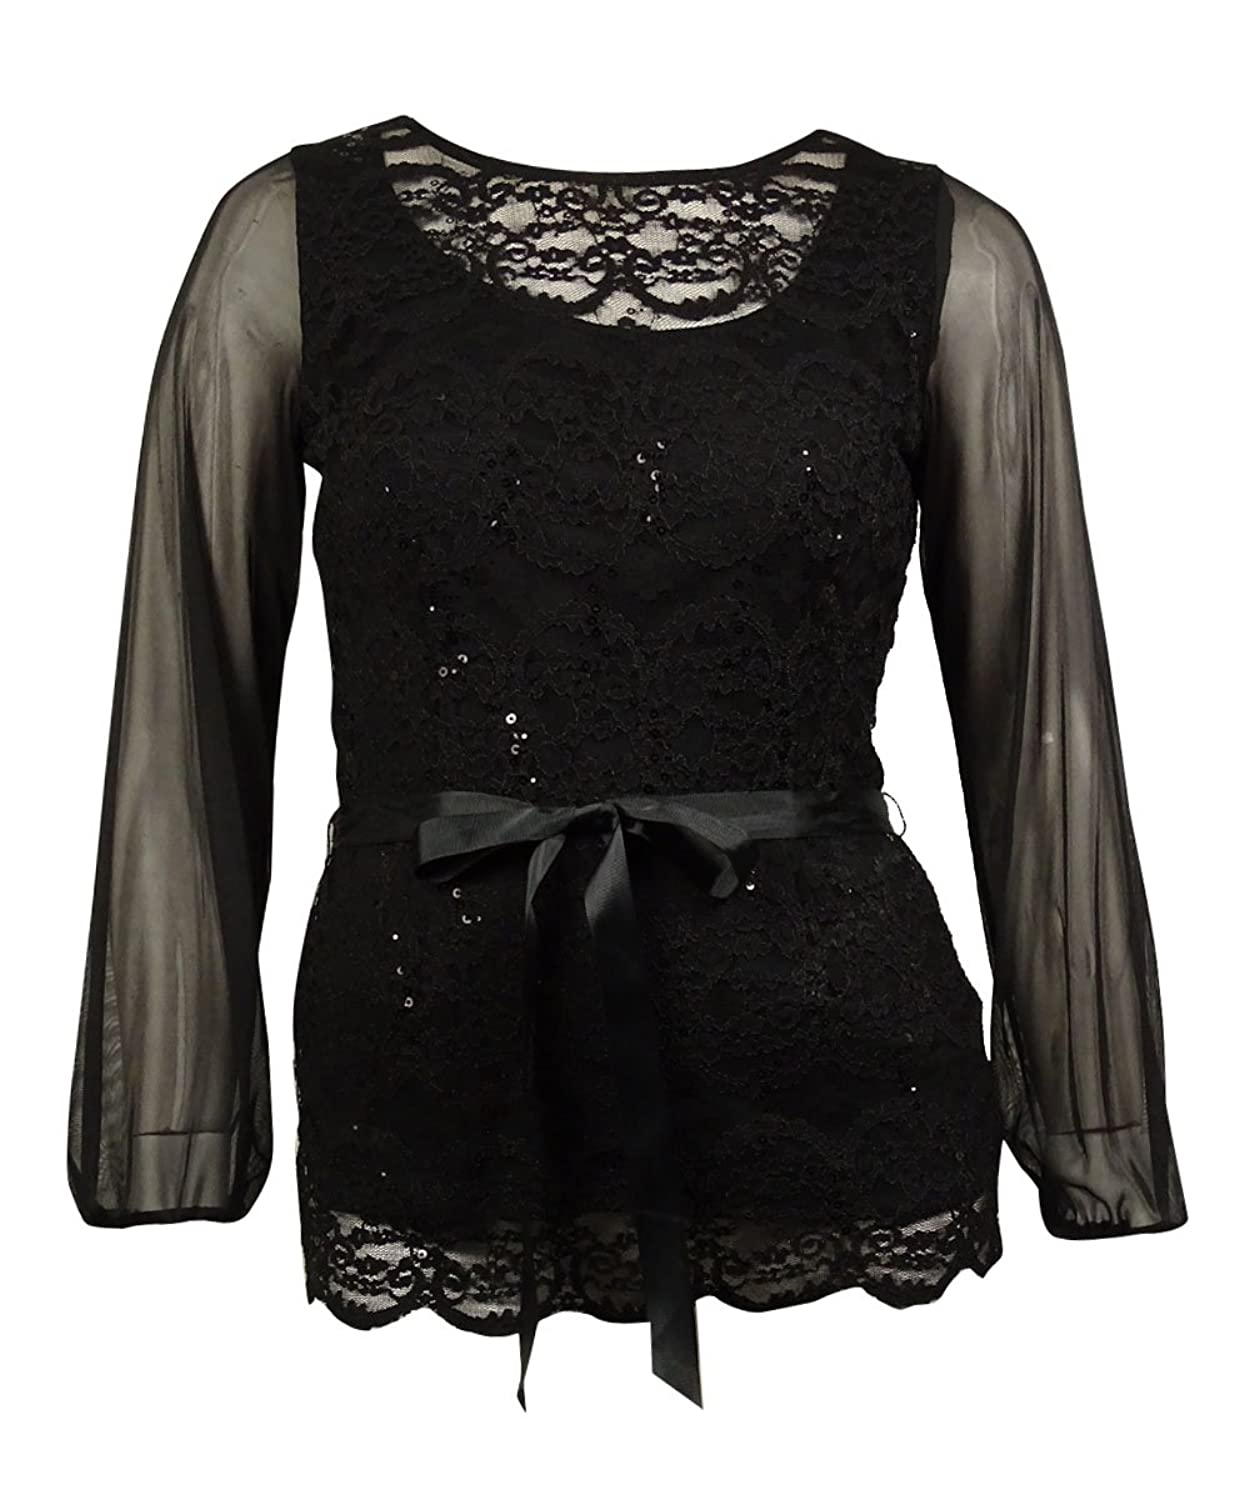 Onyx Nite Women's Large Lace Sequin Scalloped Sheer Blouse